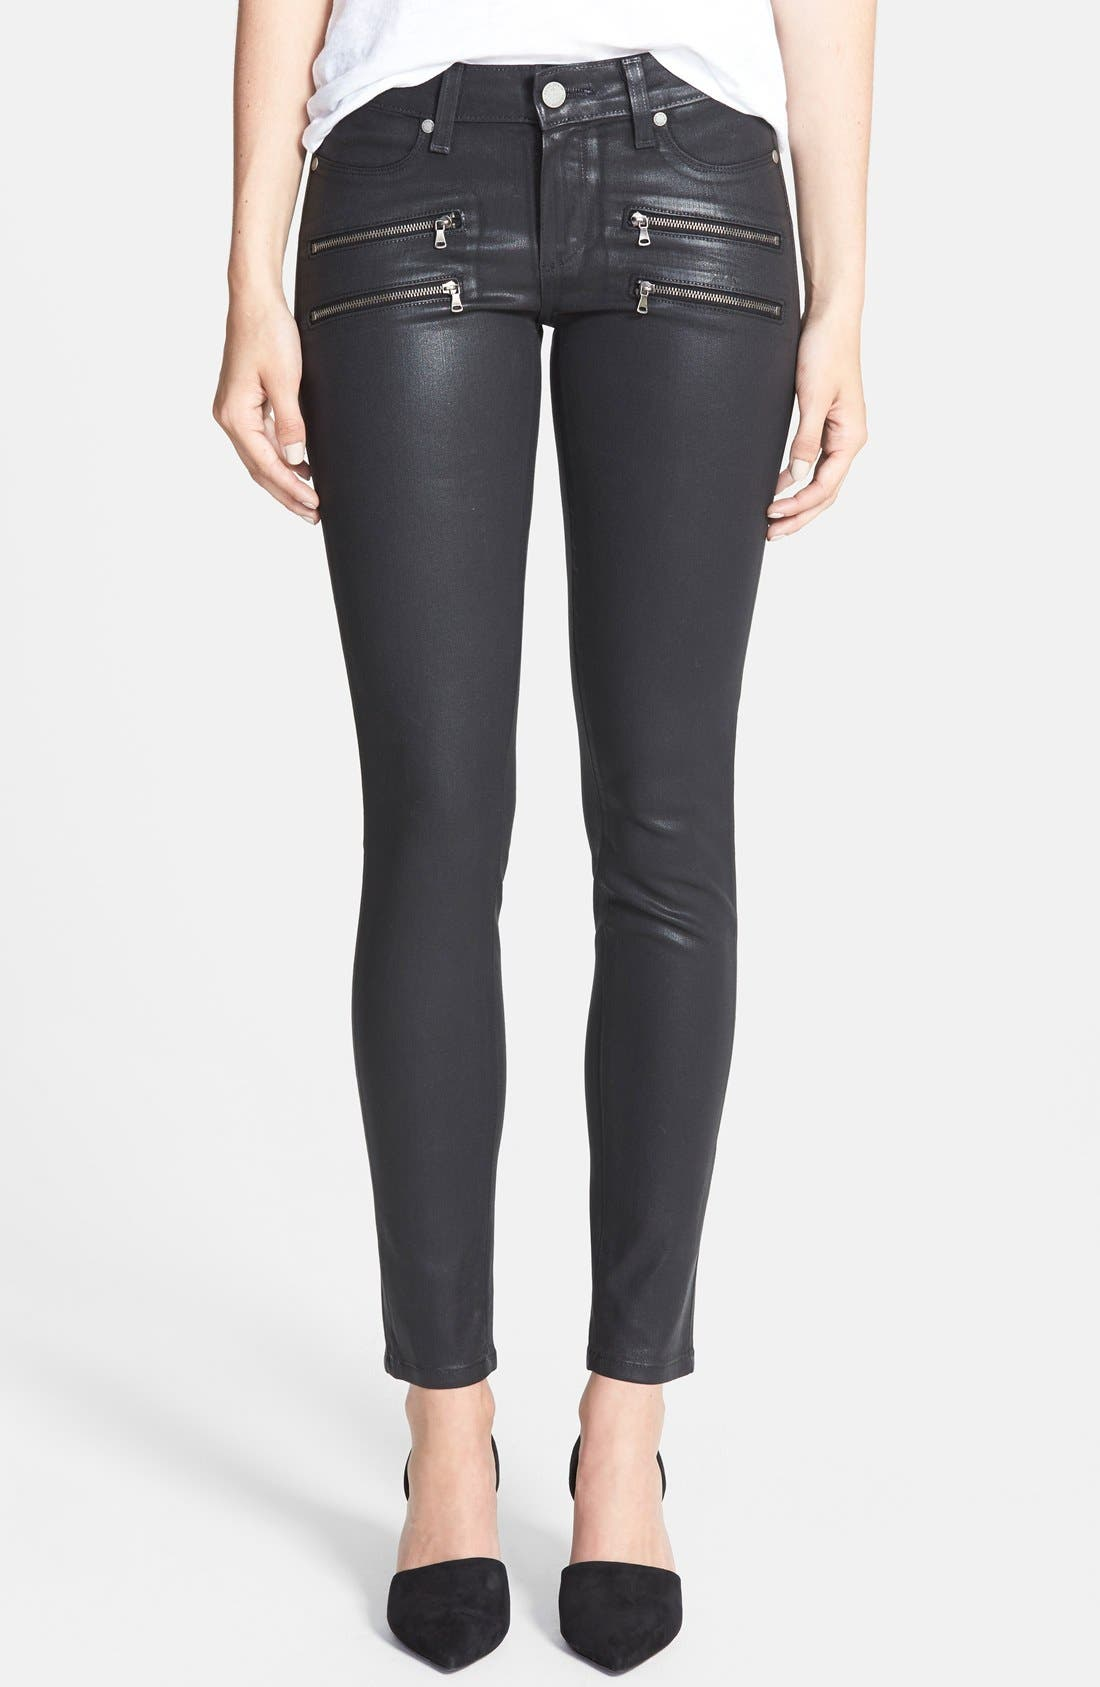 'Edgemont' Coated Ultra Skinny Jeans,                         Main,                         color, Black Silk